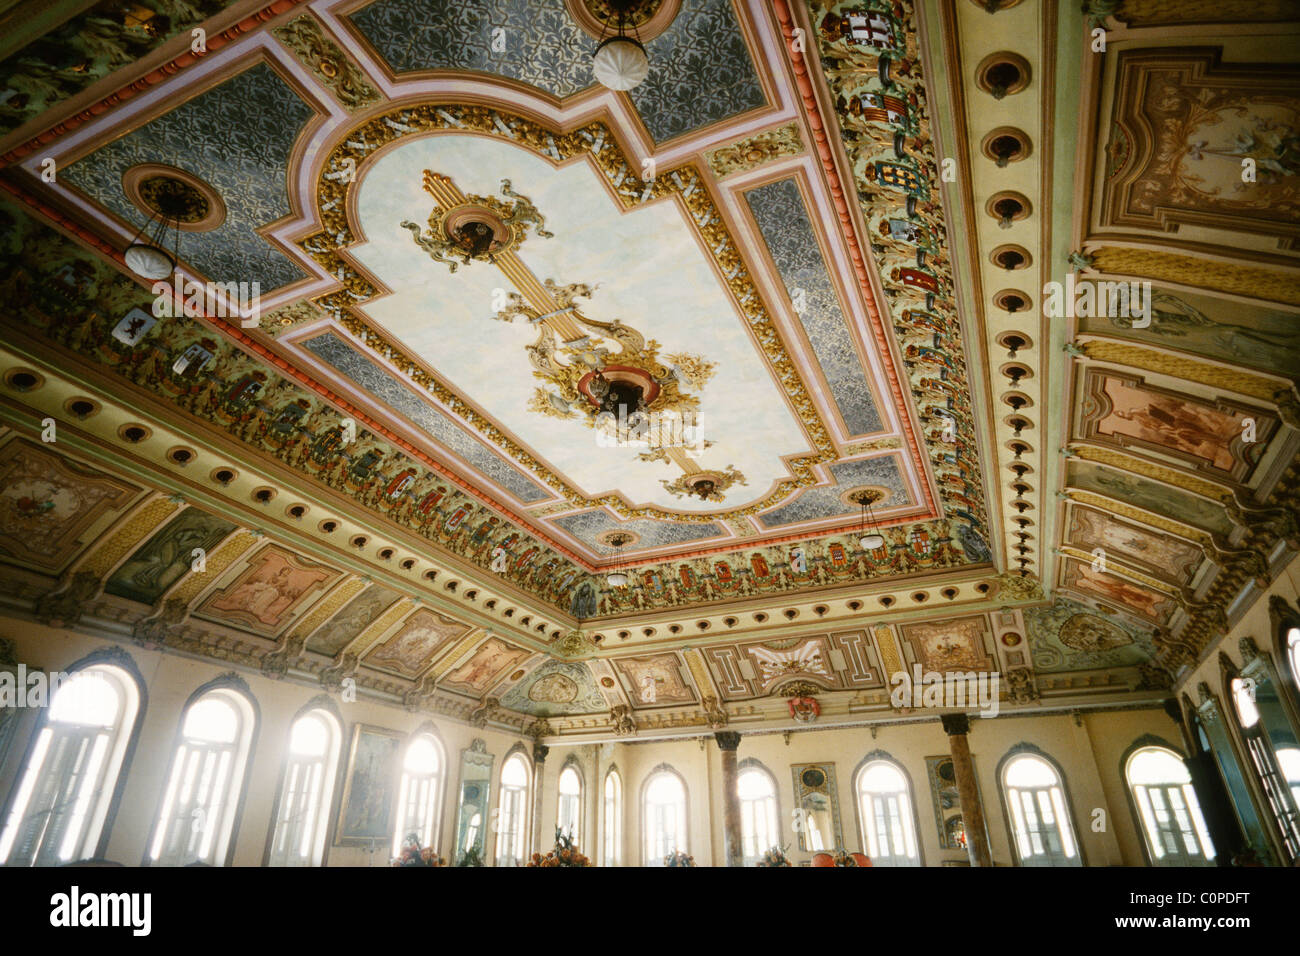 Havana. Cuba. The ornately decorated Palacio de los Matrimonios aka Casino Espanol. - Stock Image